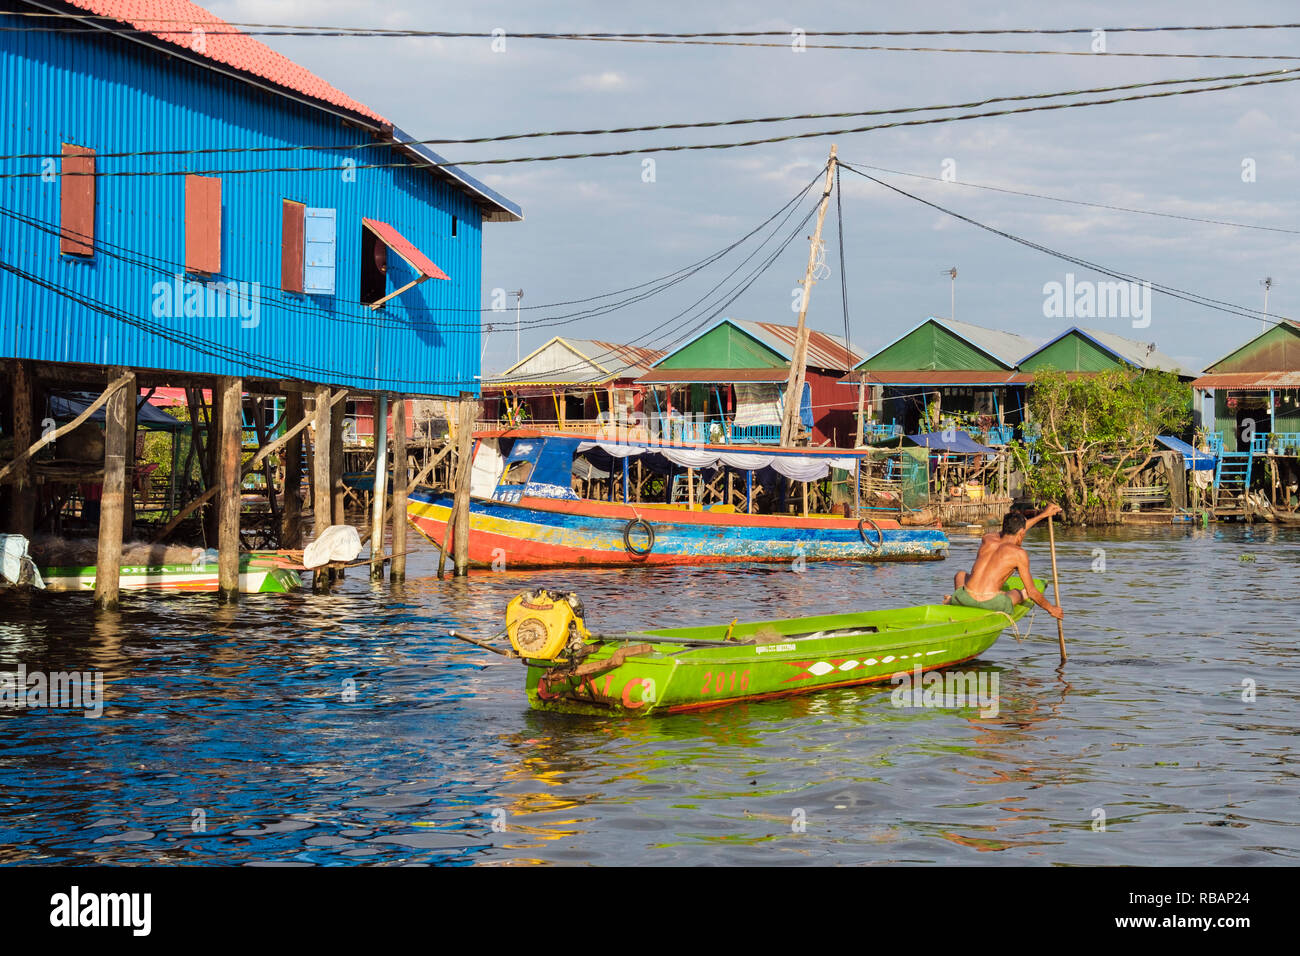 Houses on stilts and boats in floating village in Tonle Sap lake. Kampong Phluk, Siem Reap province, Cambodia, southeast Asia Stock Photo